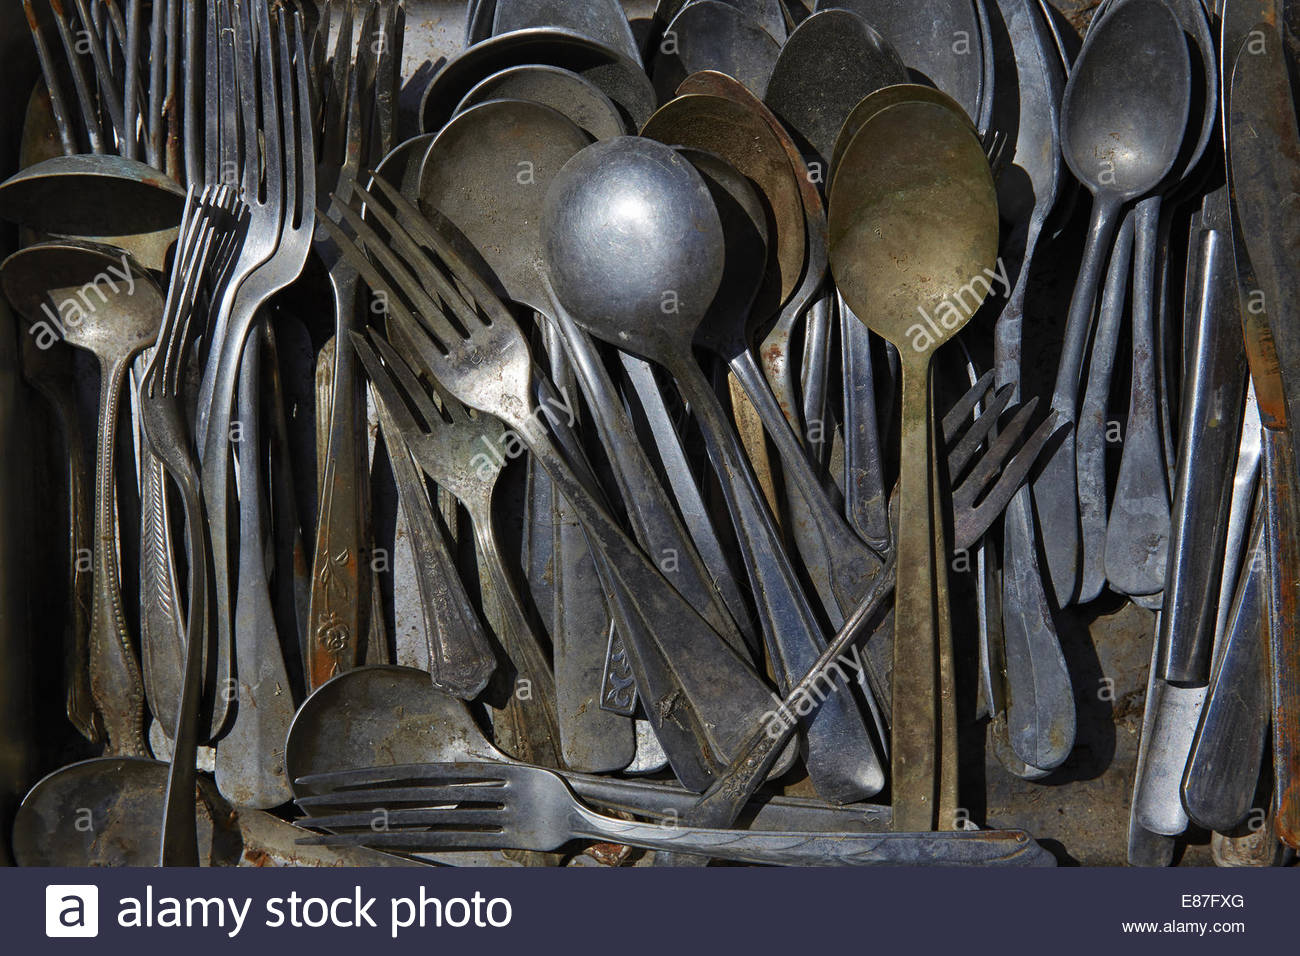 Vintage and rusty group of utensils & silverware. - Stock Image